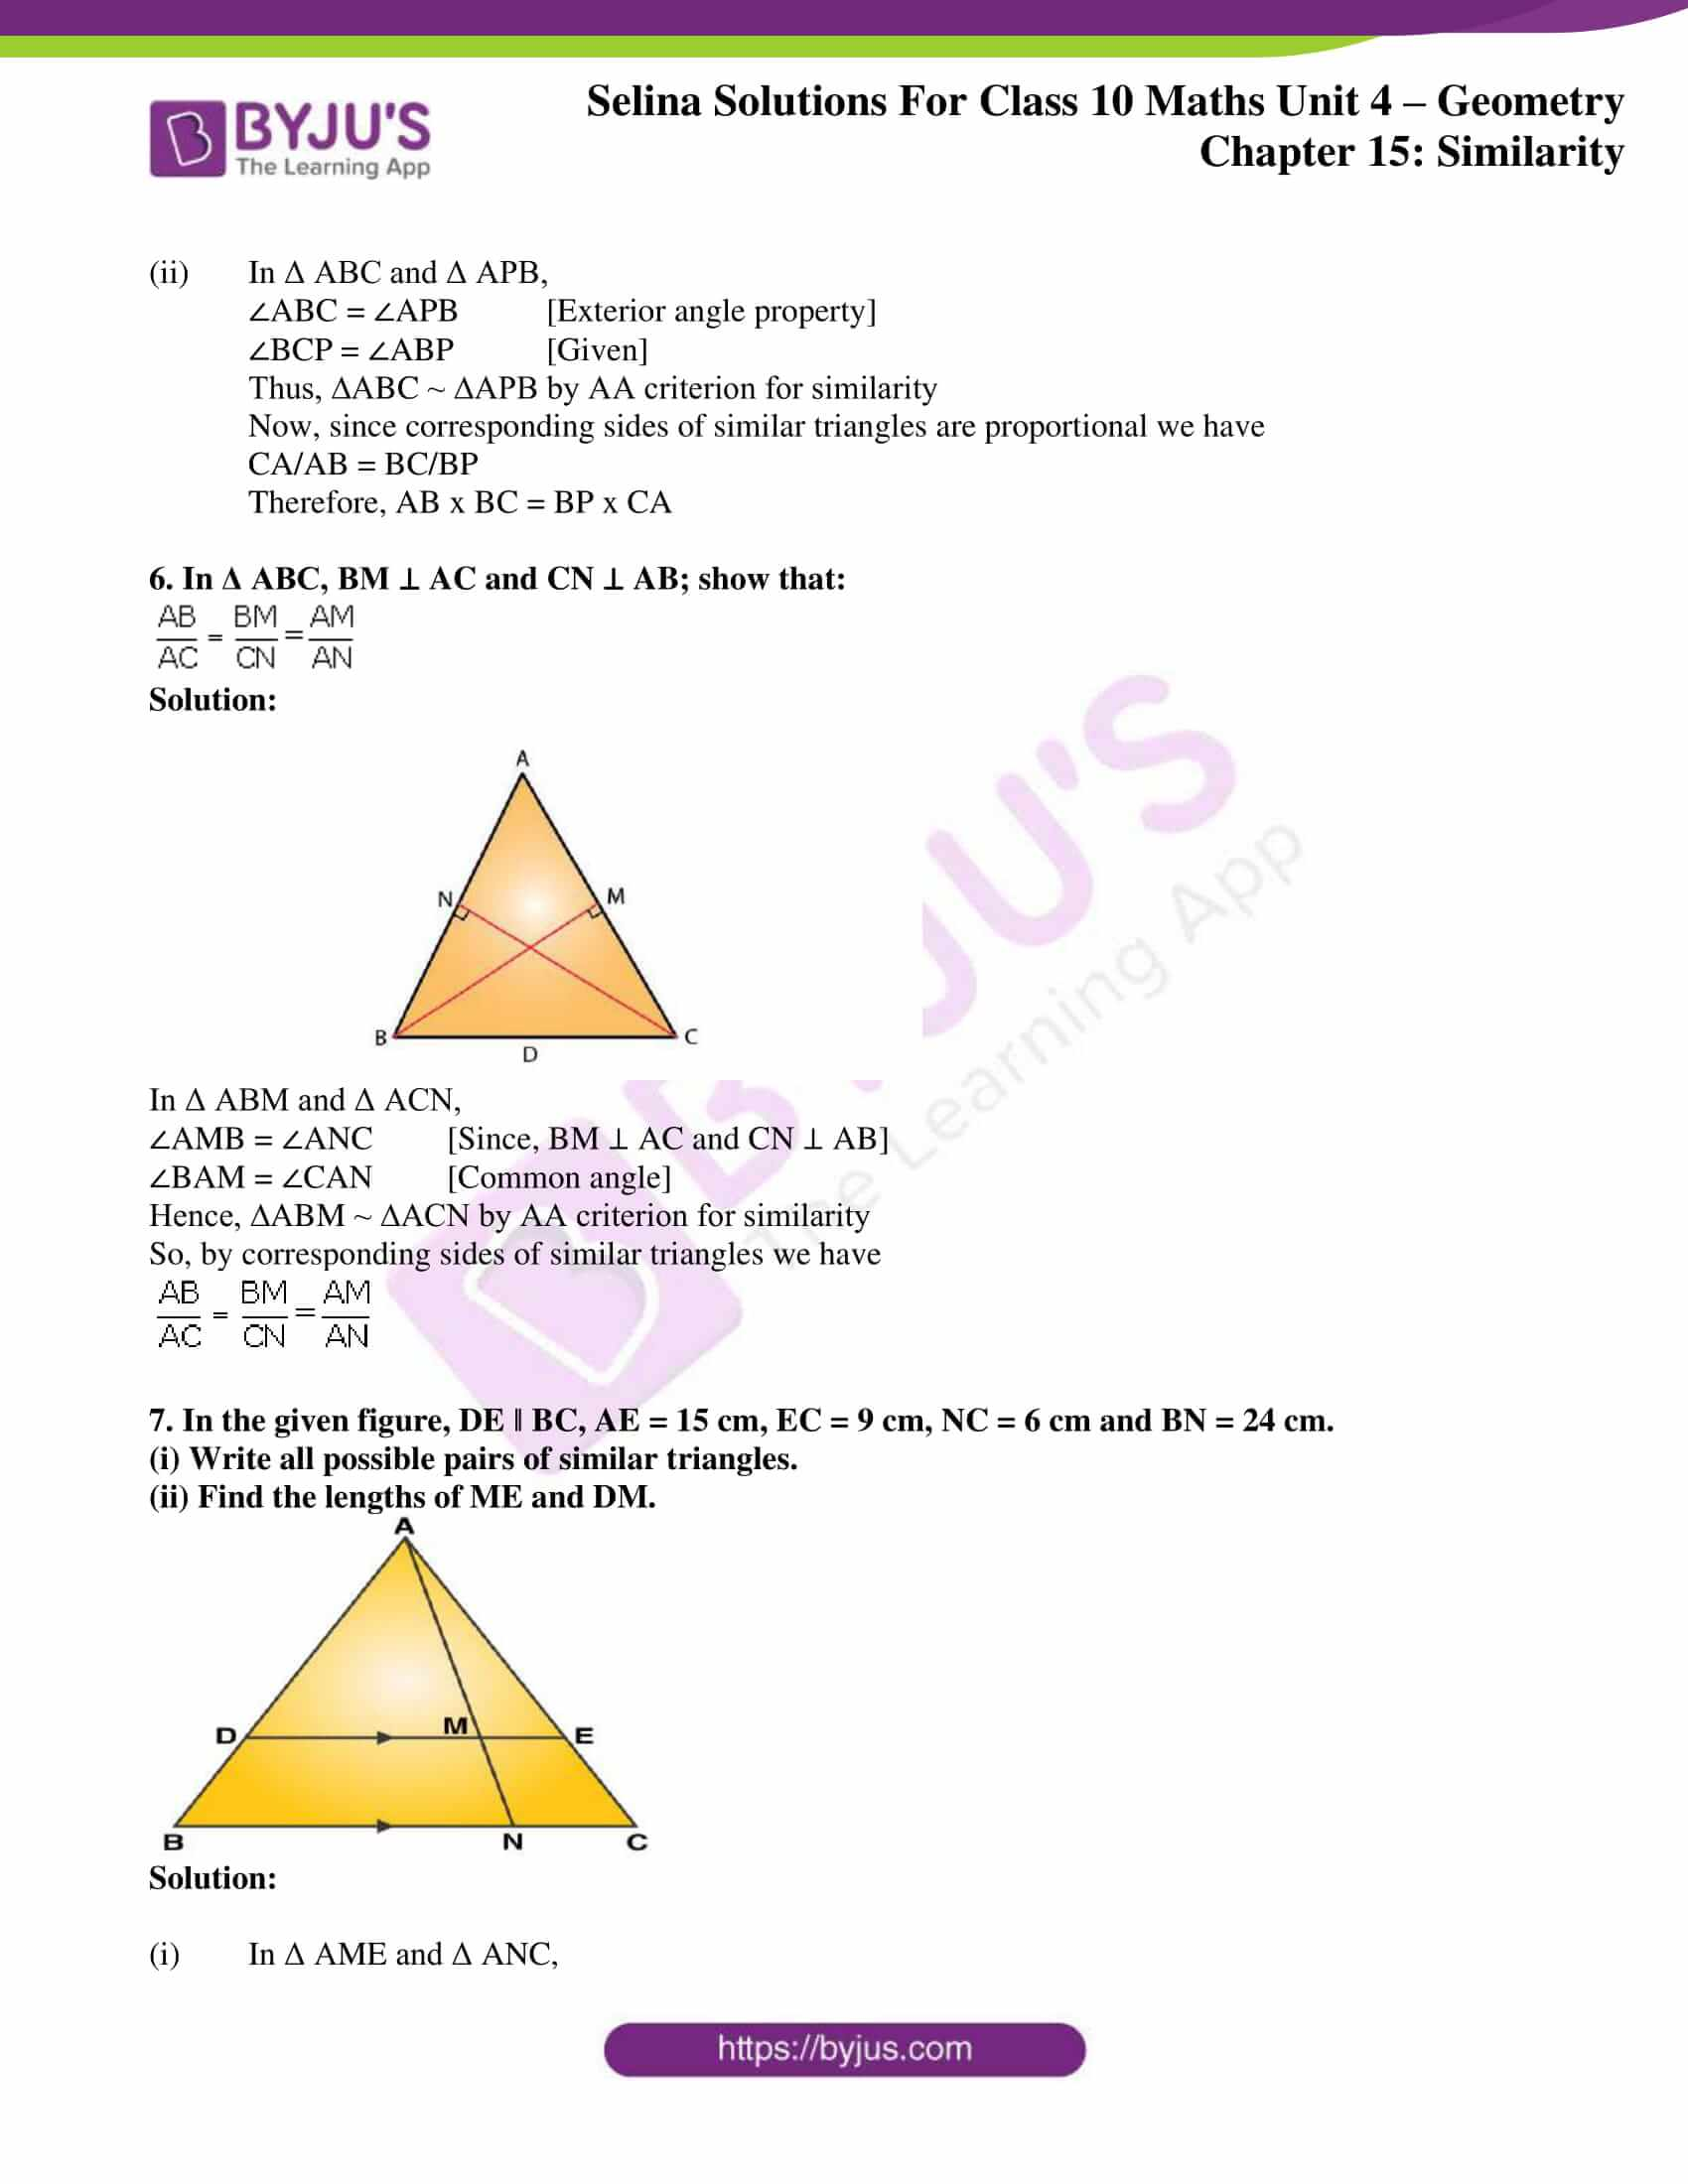 selina solution concise maths class 10 chapter 15 ex a 4